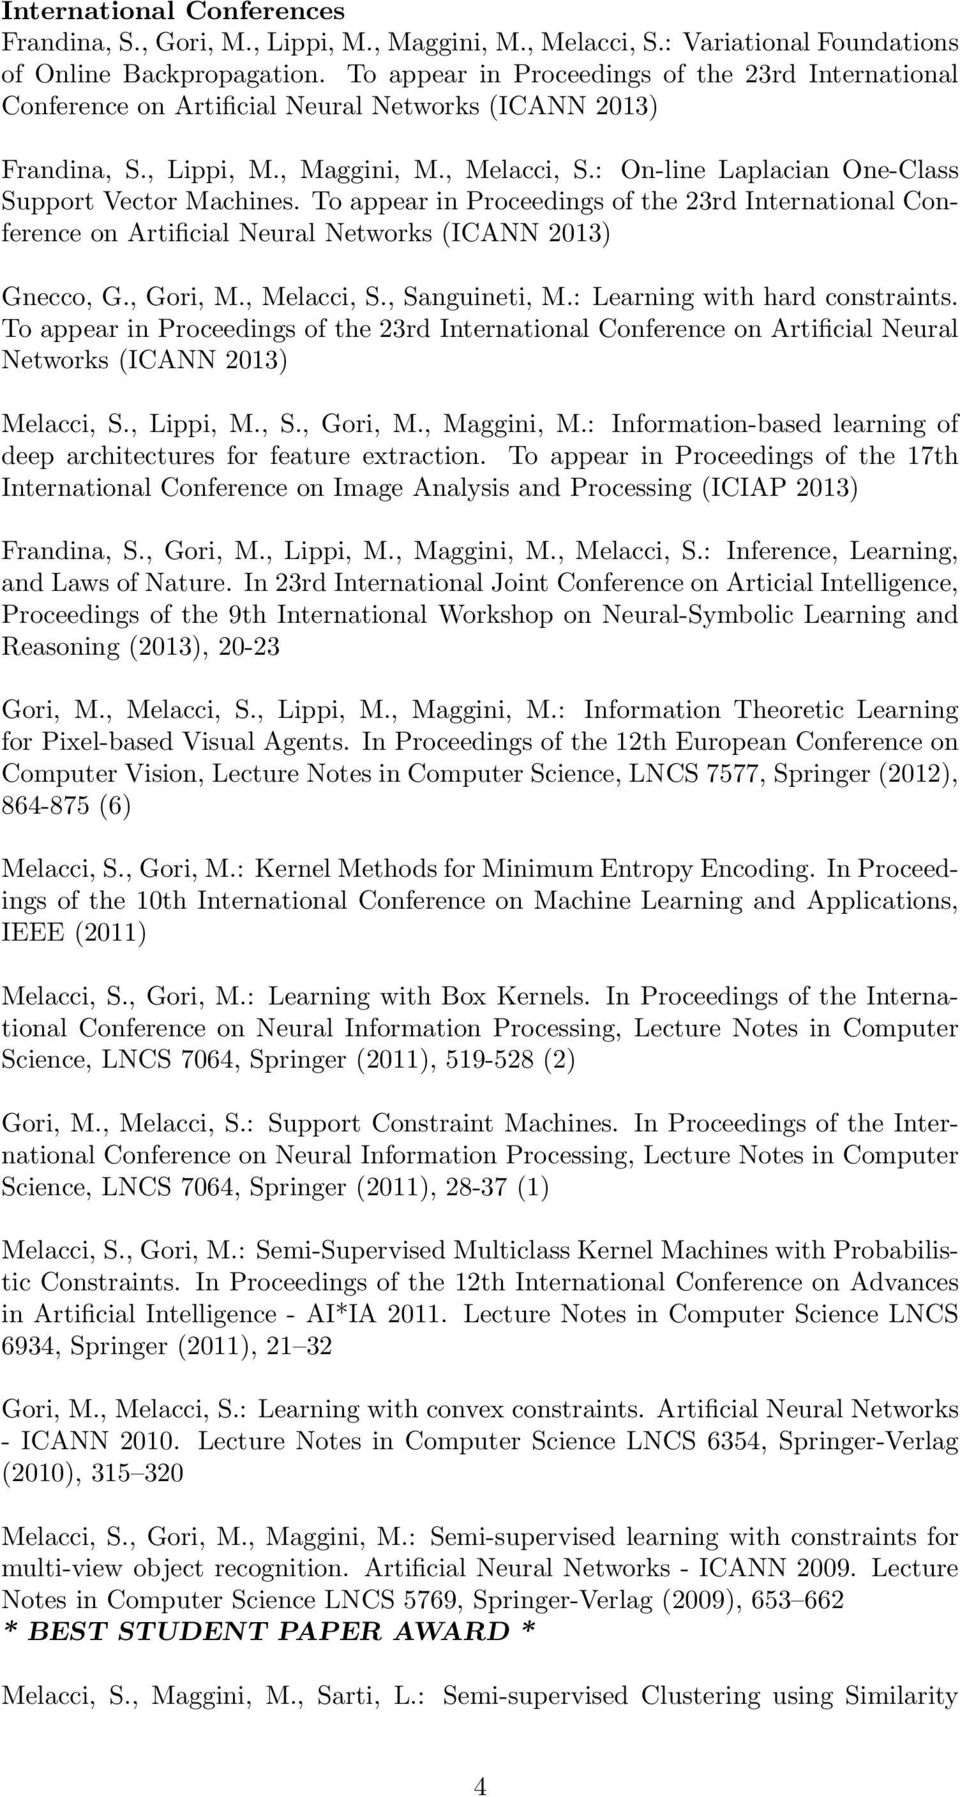 : On-line Laplacian One-Class Support Vector Machines. To appear in Proceedings of the 23rd International Conference on Artificial Neural Networks (ICANN 2013) Gnecco, G., Gori, M., Melacci, S.